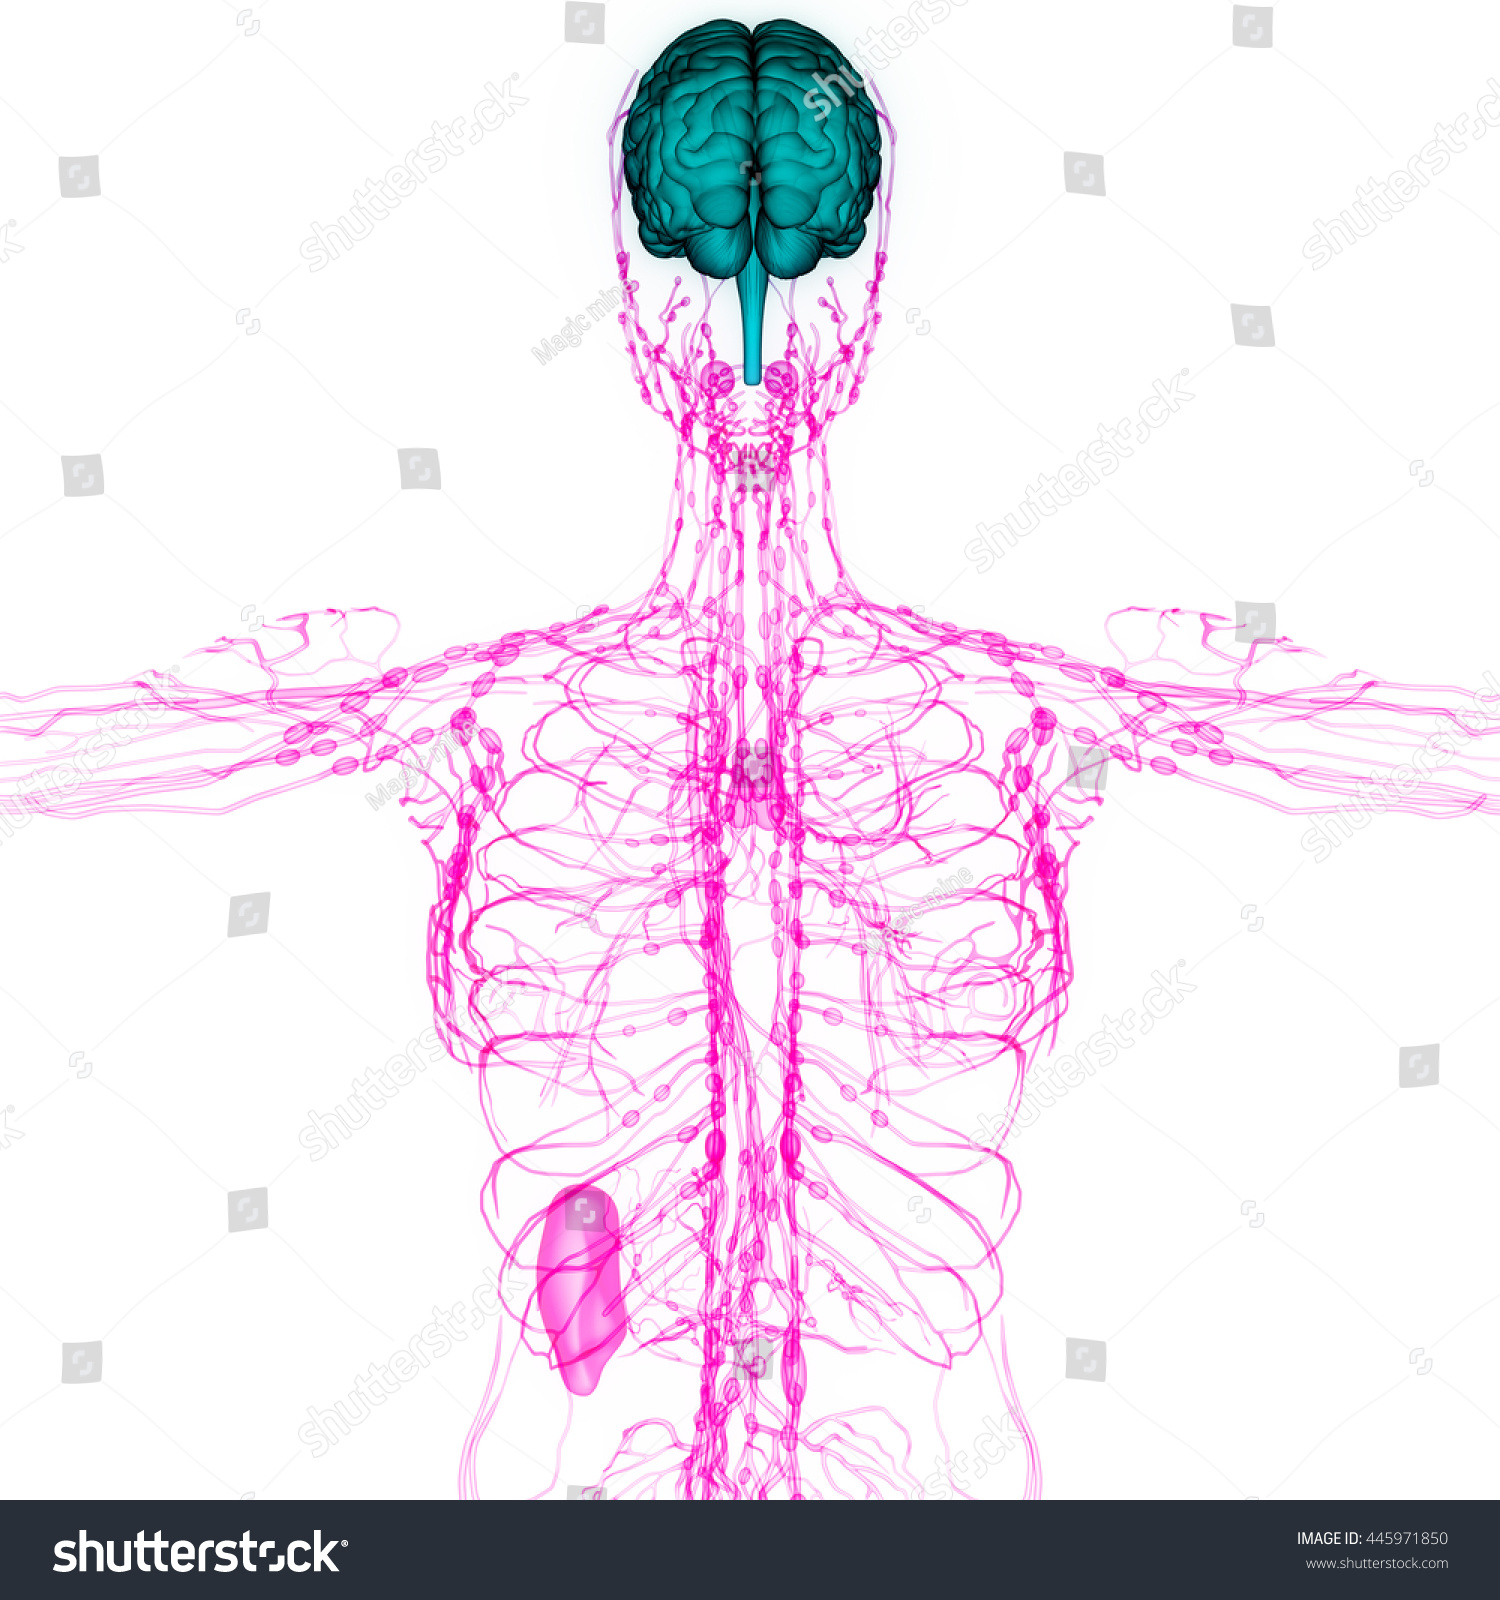 Human Brain Nerves Lymph Nodes Anatomy Stock Illustration 445971850 ...